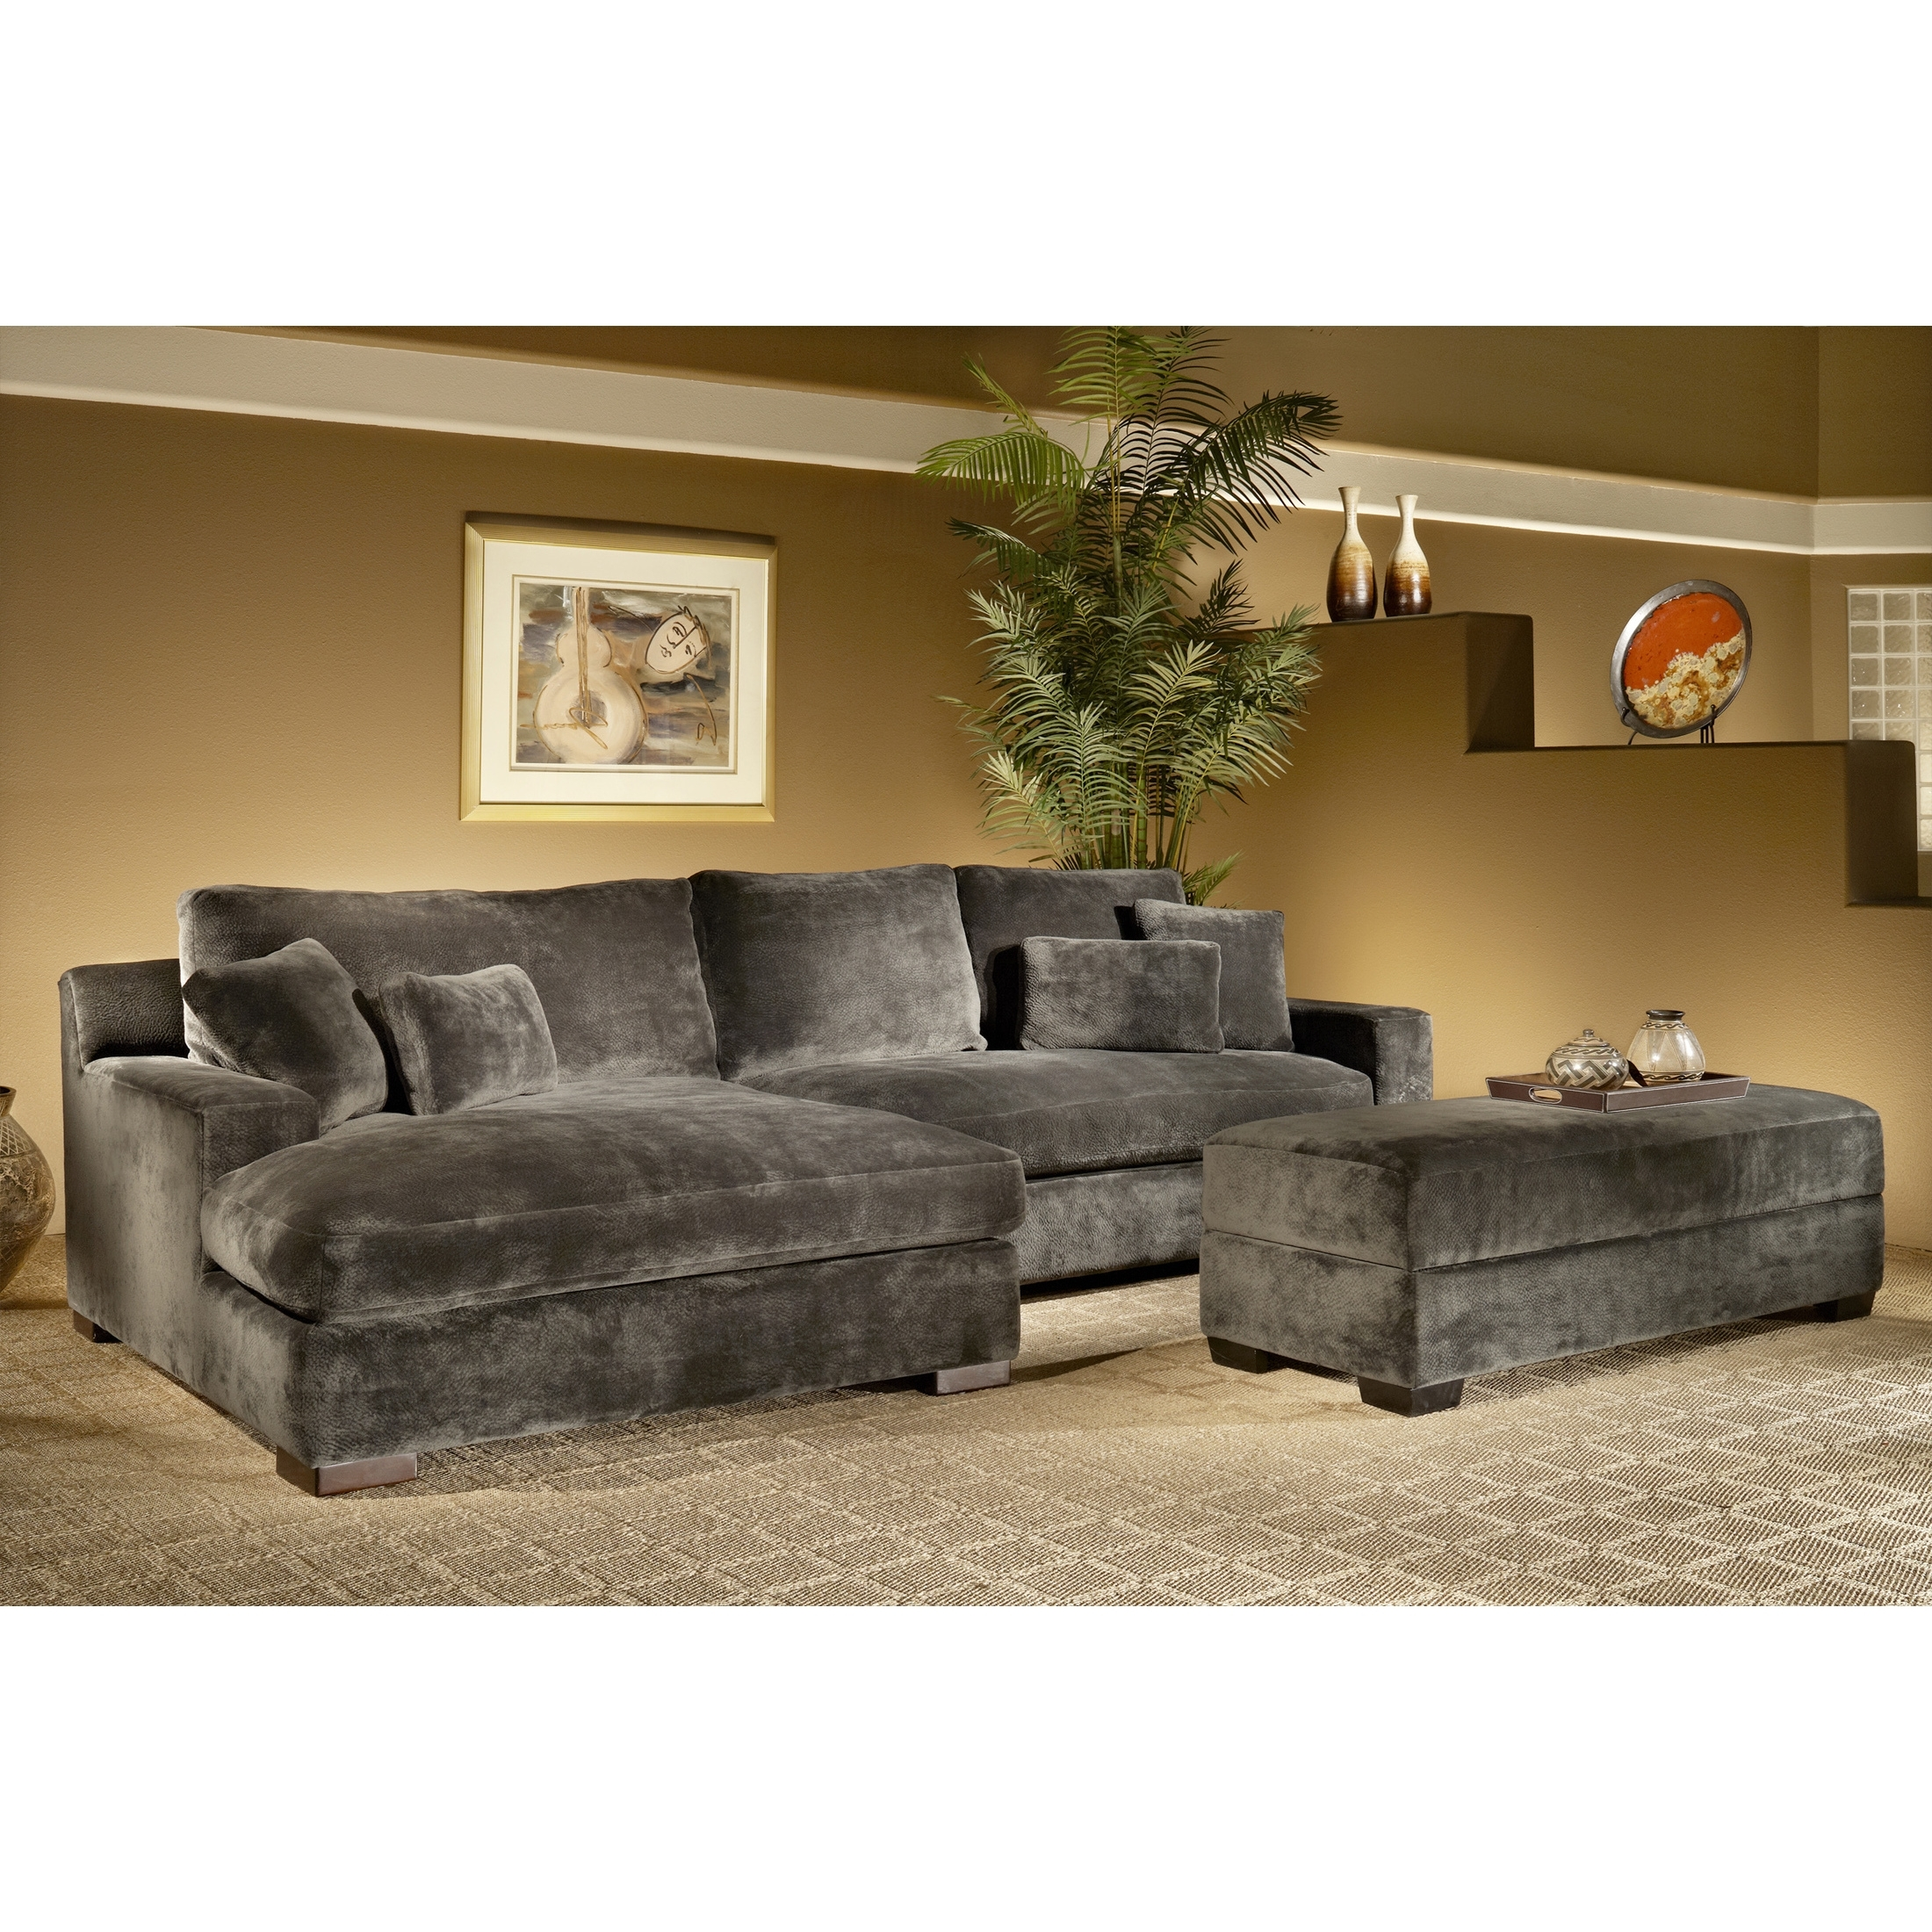 Favorite The Casual Contemporary Doris Two Piece Chaise Sectional Is Throughout Overstock Chaises (View 9 of 15)